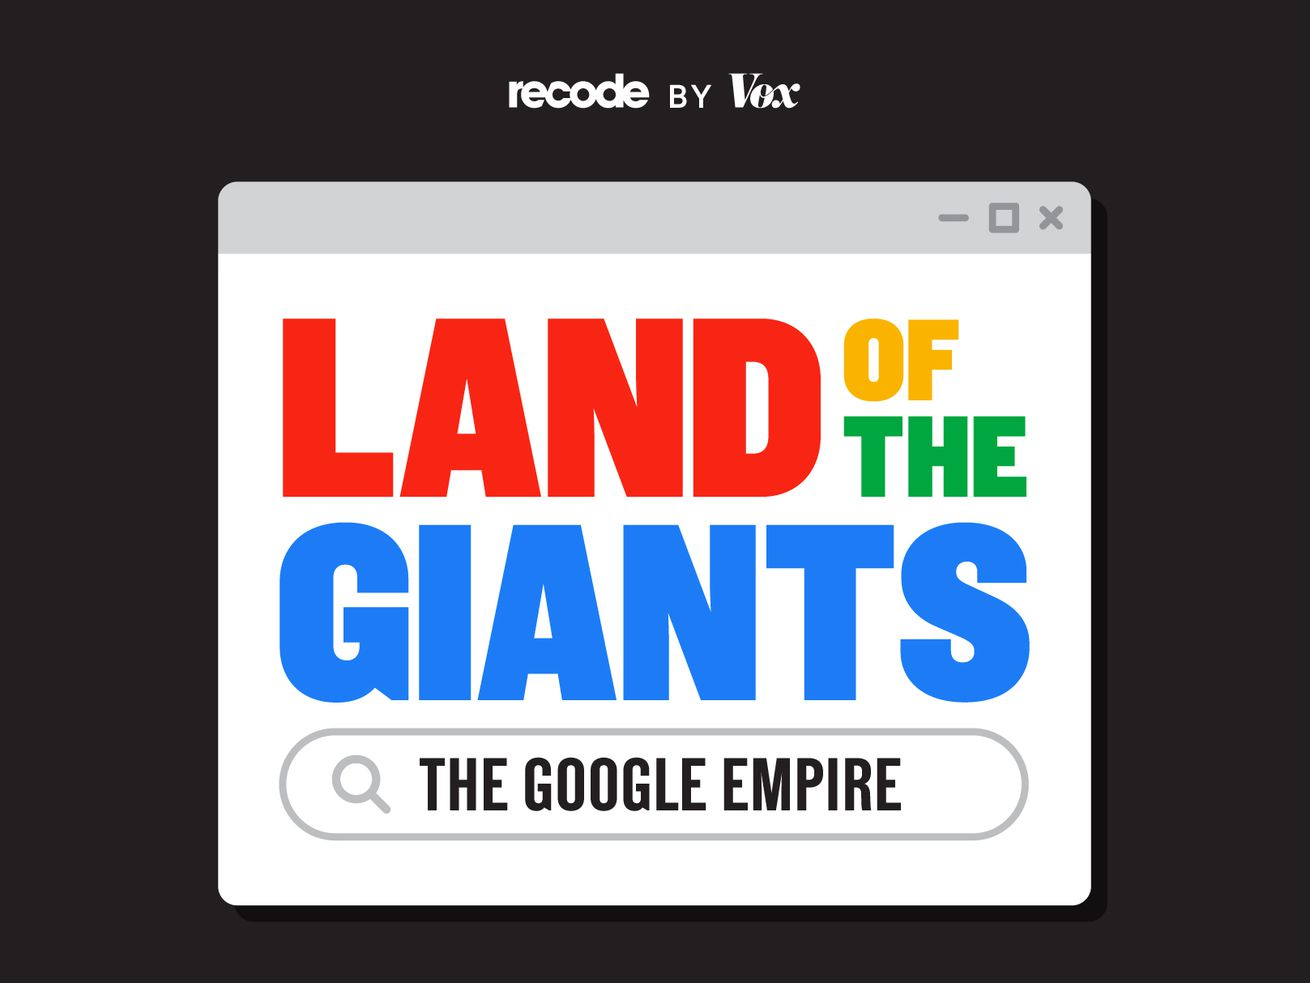 The logo for the podcast called Land of the Giants: The Google Empire.